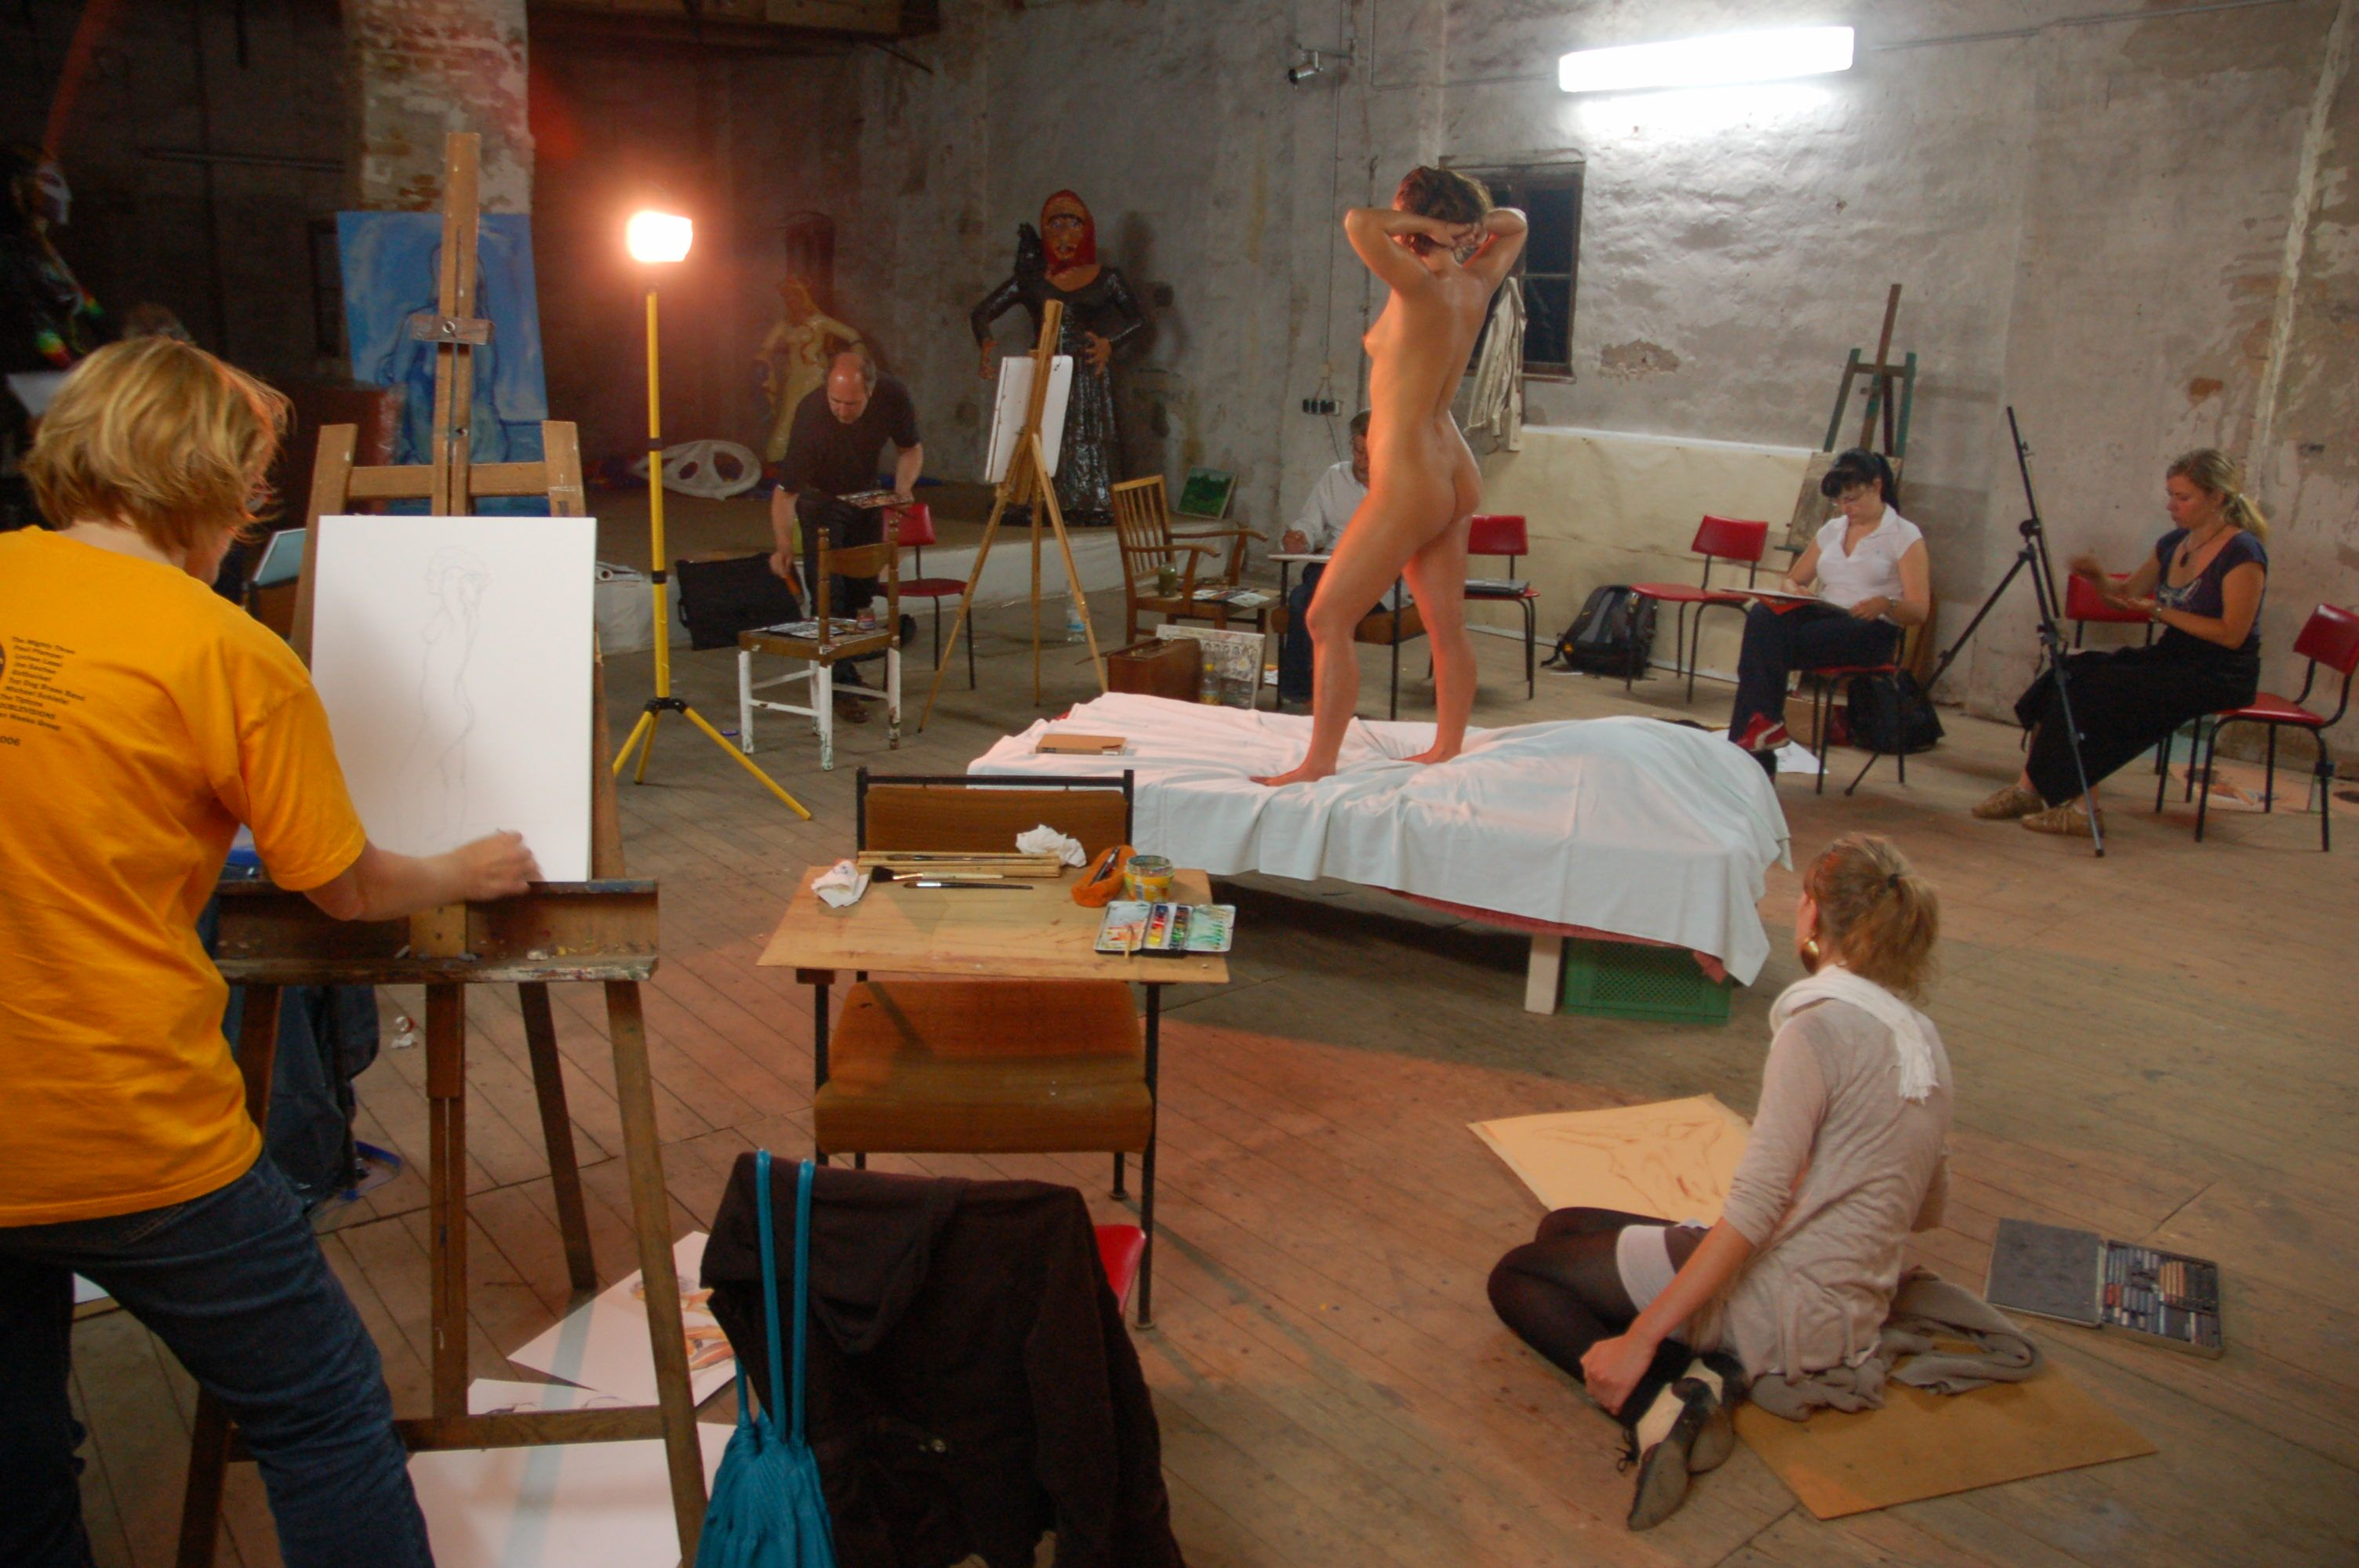 from Memphis modeling nude for art class